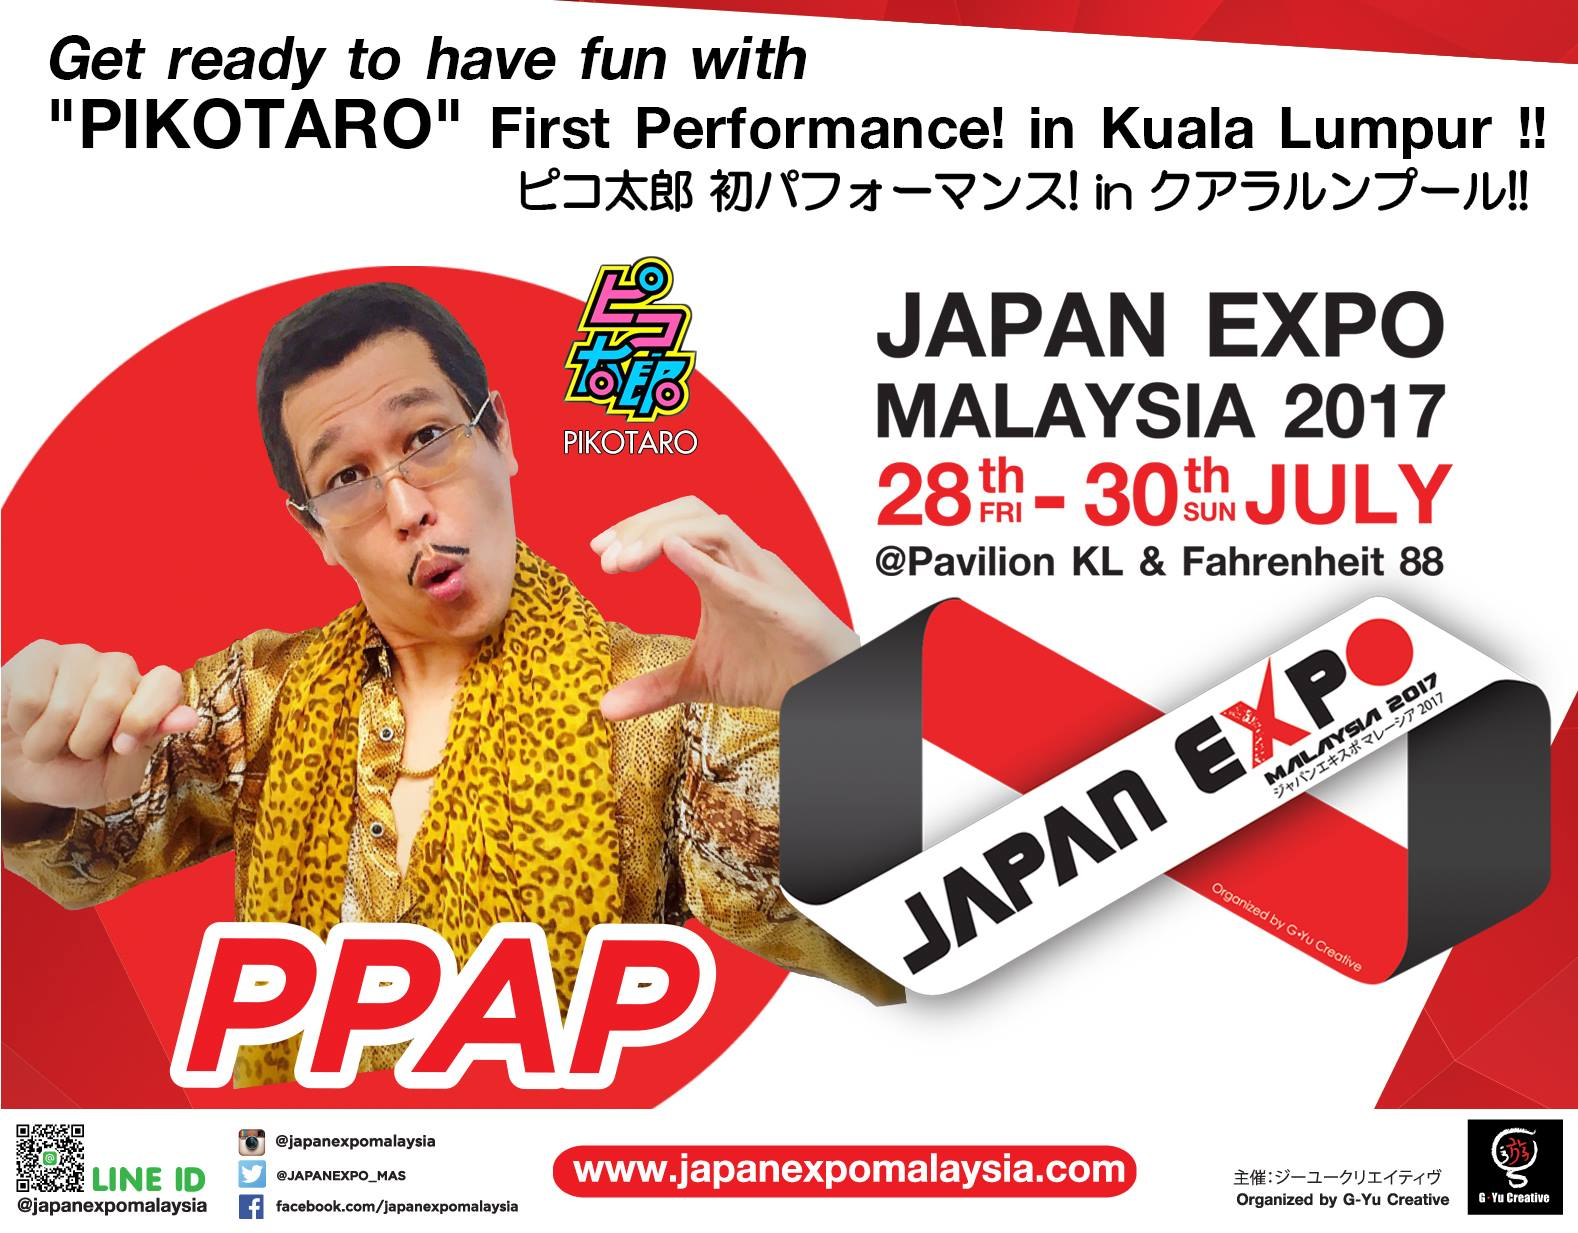 Pikotaro is coming to town next month - Date japan expo 2017 ...